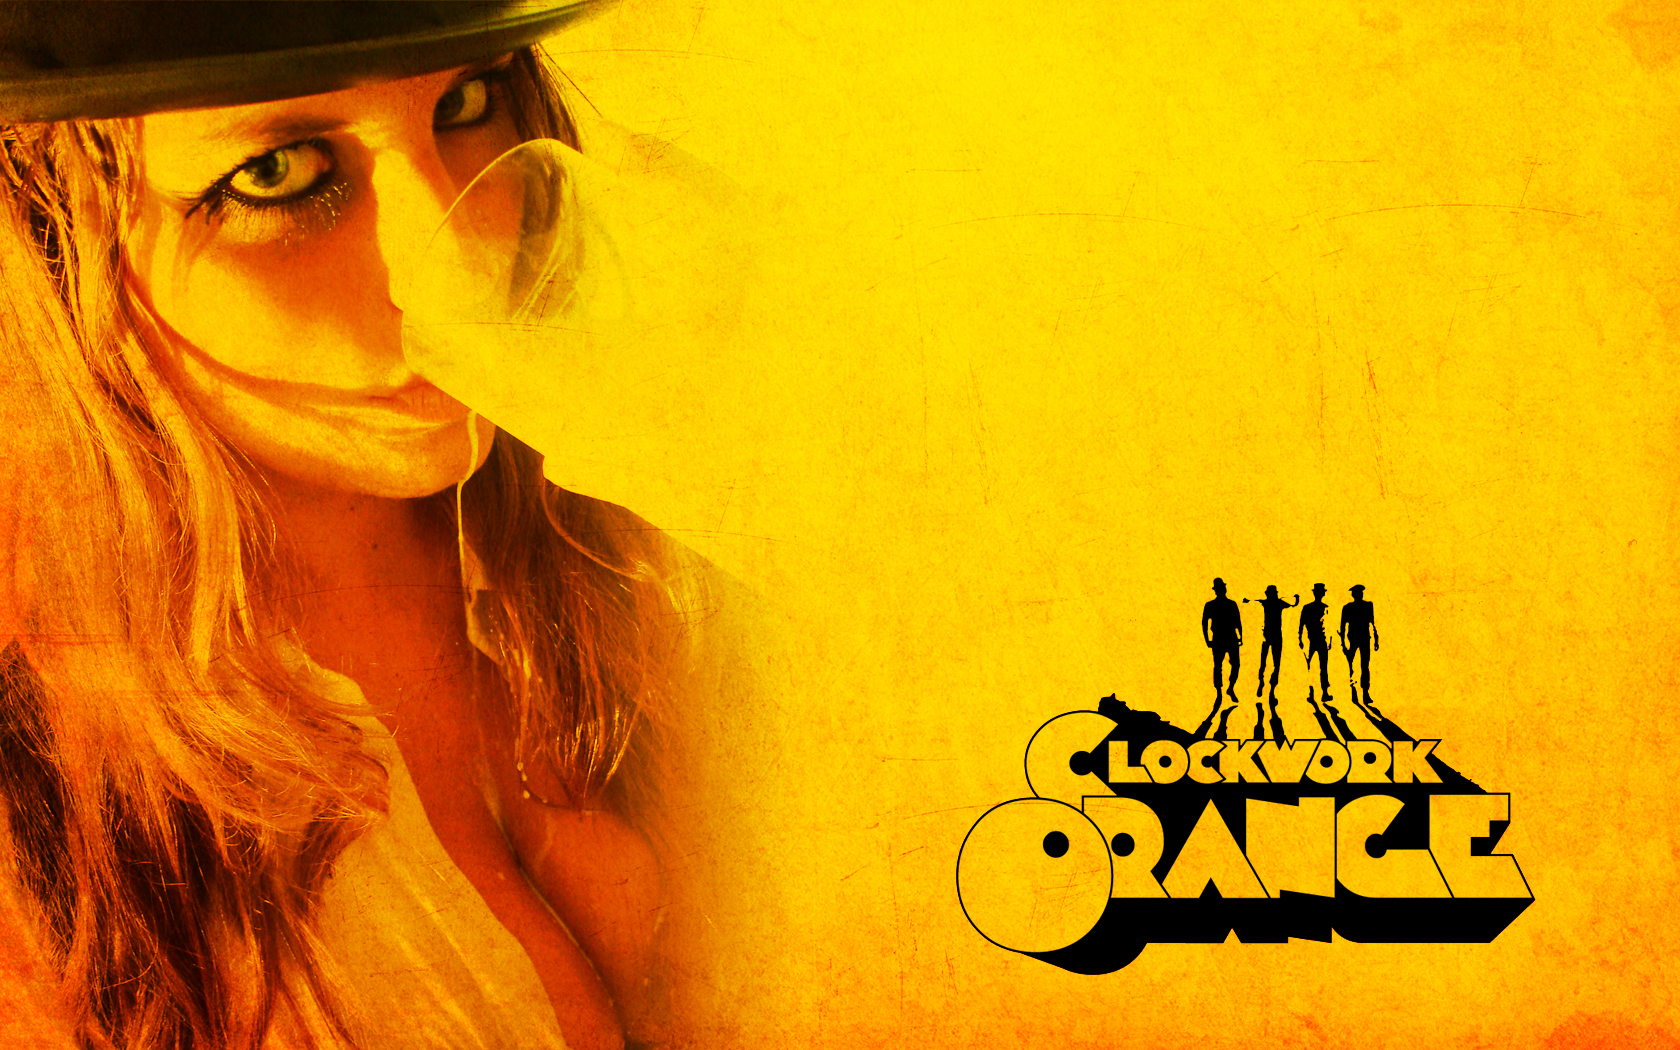 Clockwork Orange Wallpaper and Background | 1680x1050 | ID ... A Clockwork Orange Wallpaper